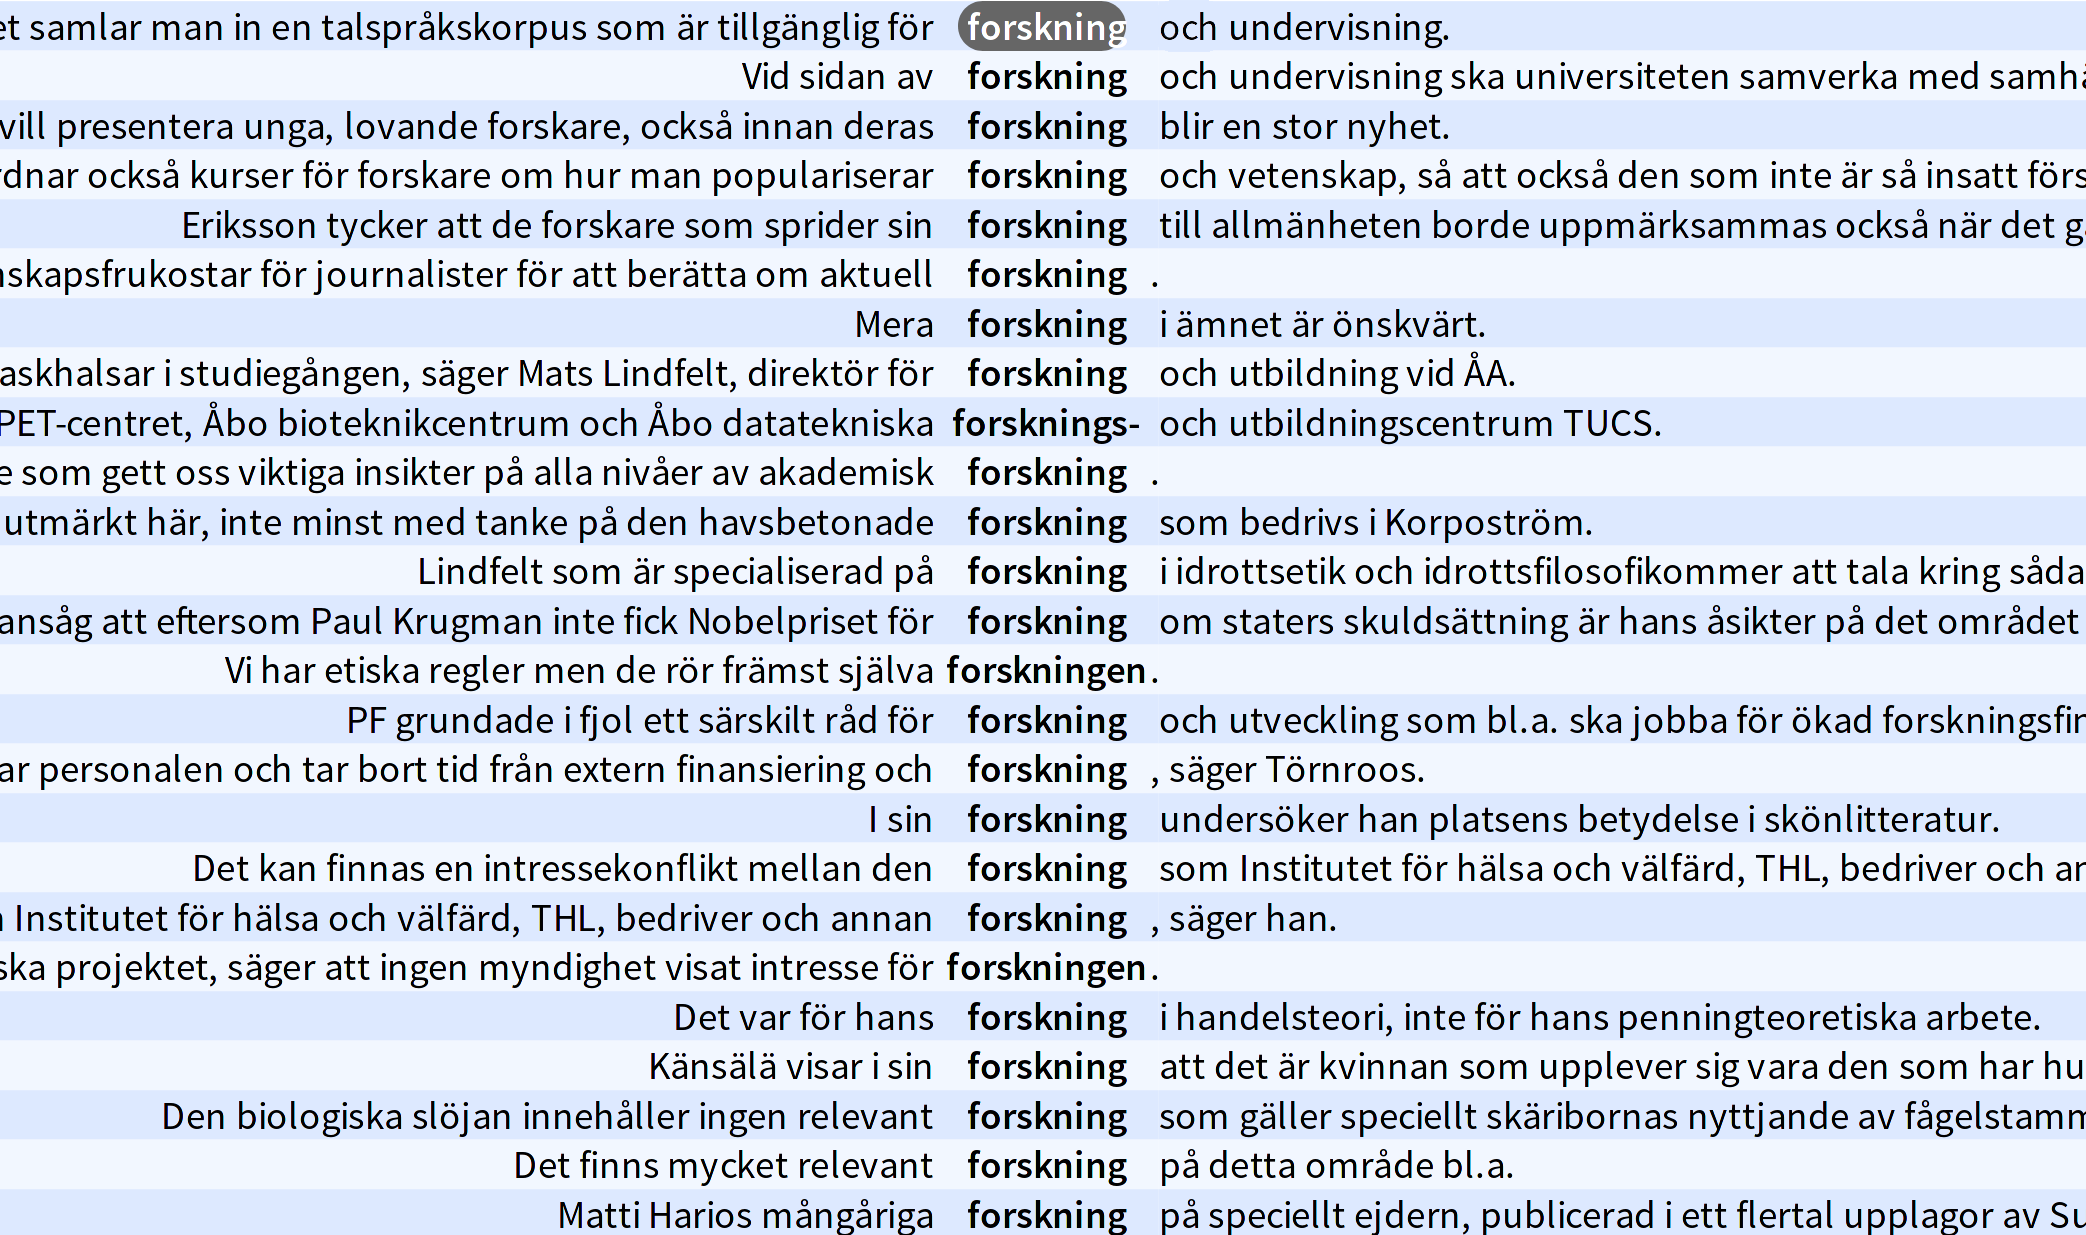 """Concordance results from a search on the word – or more specifically, the lemgram – """"forskning"""" (research in Swedish) in a large text corpus in the tool Korp. Concordancing is a means of showing keywords in their contexts."""